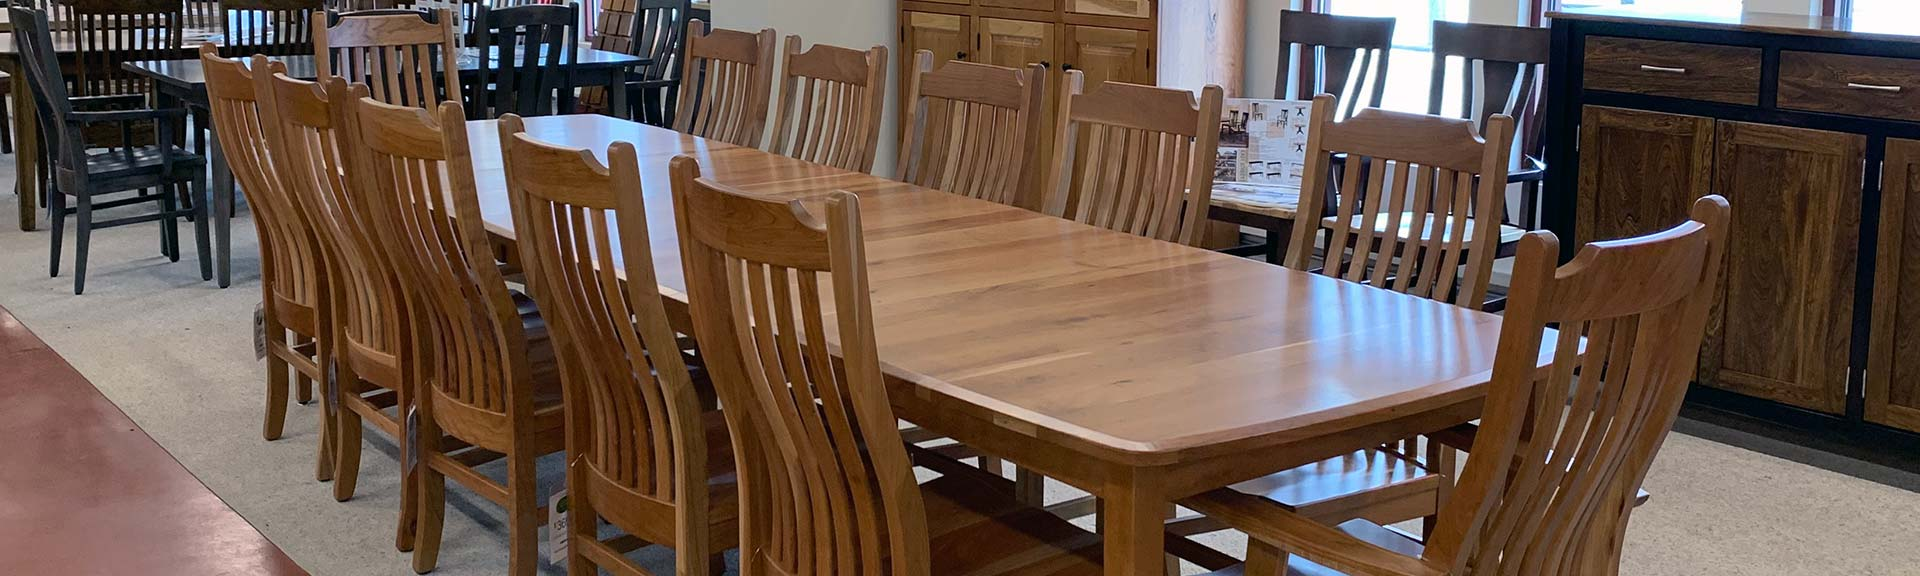 With This Being Said, We Understand The Importance Of Offering A Large  Variety Of Dining Room Sets To Accommodate Families Both Large And Small.